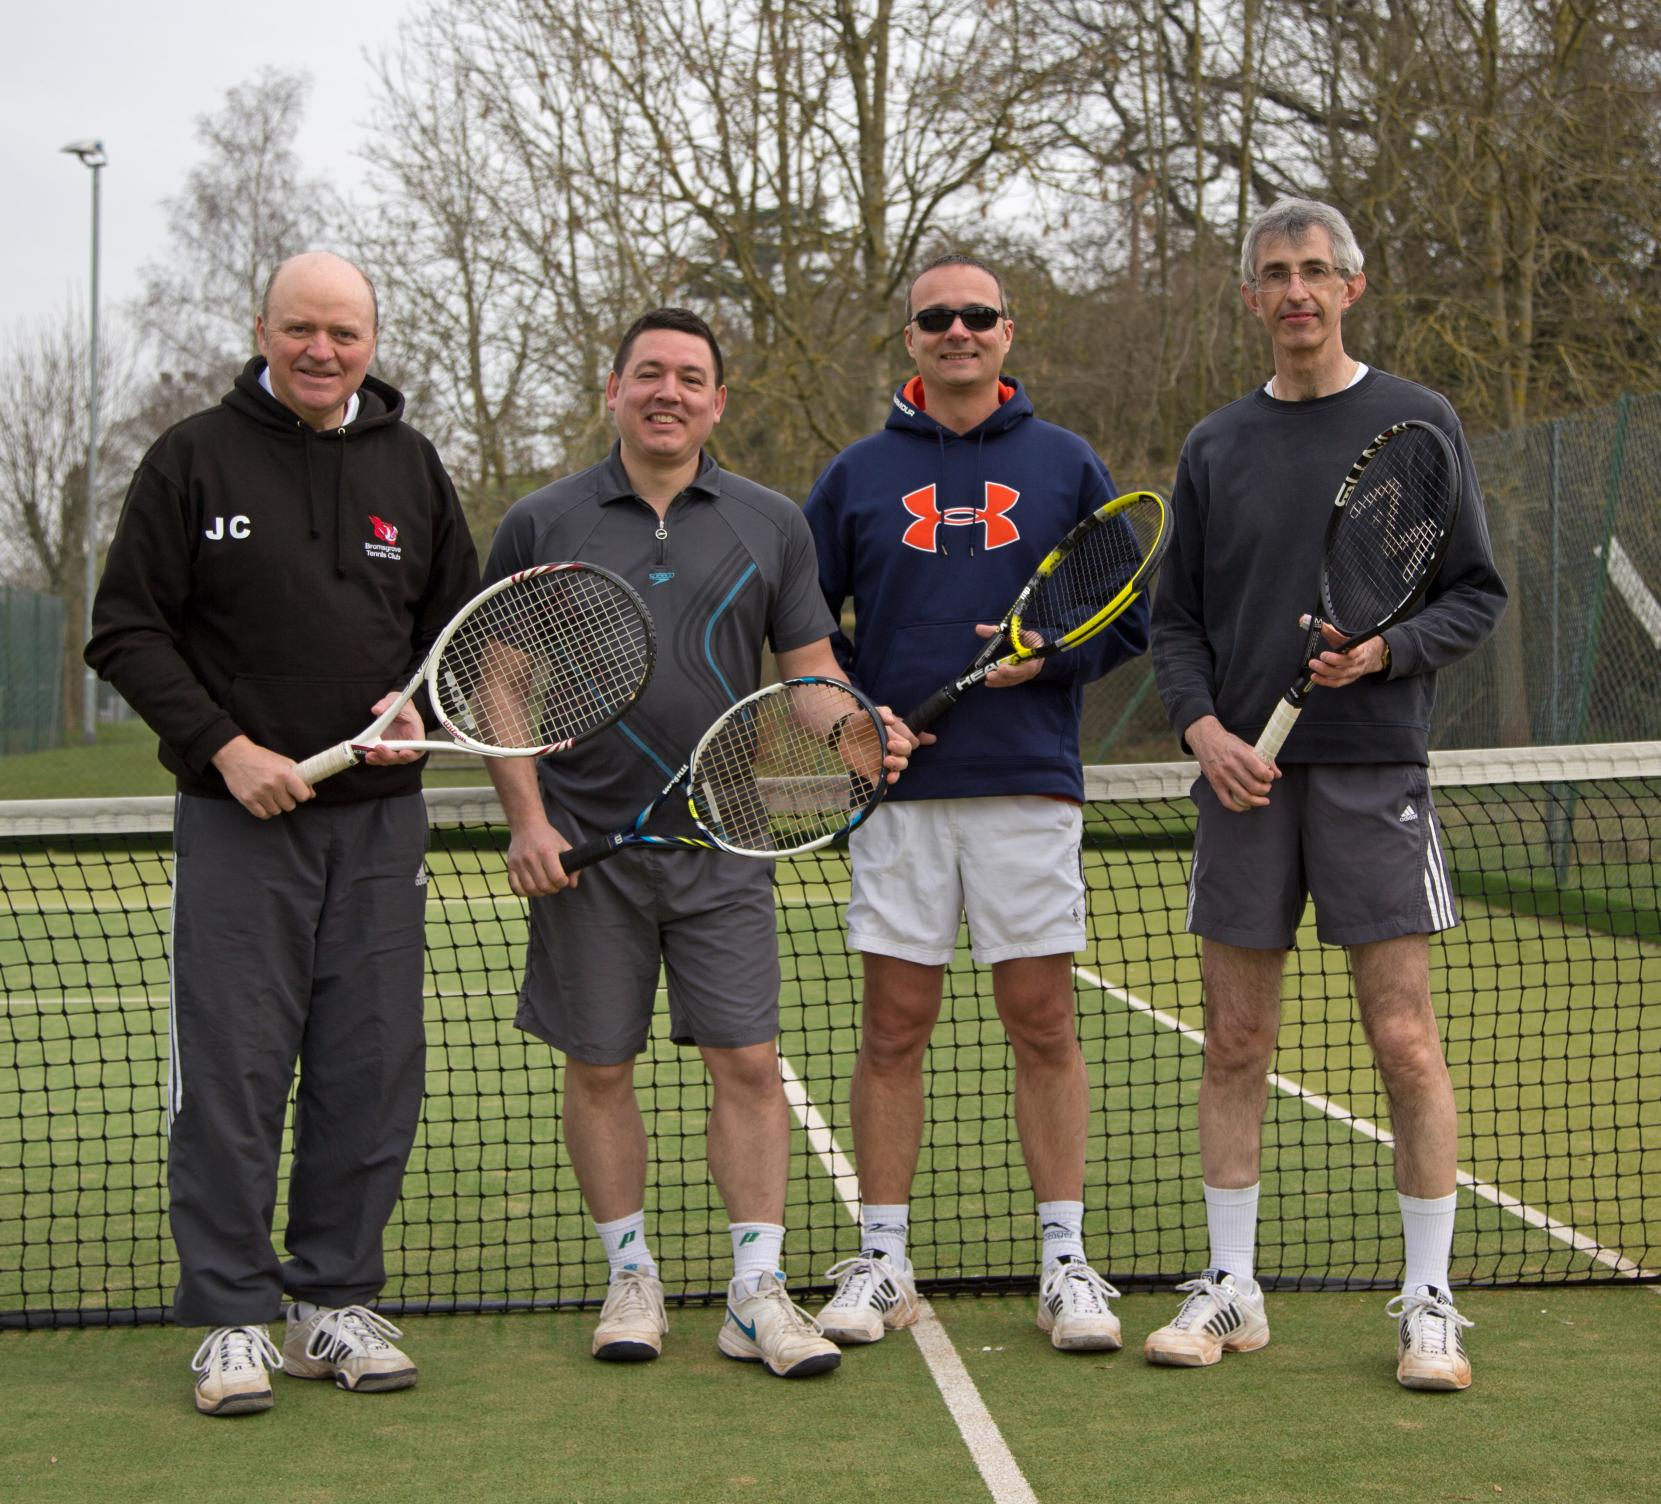 Bromsgrove Tennis Club's men's D team of John Casey, Alex Willis, Pete Morris and Mark Blake.